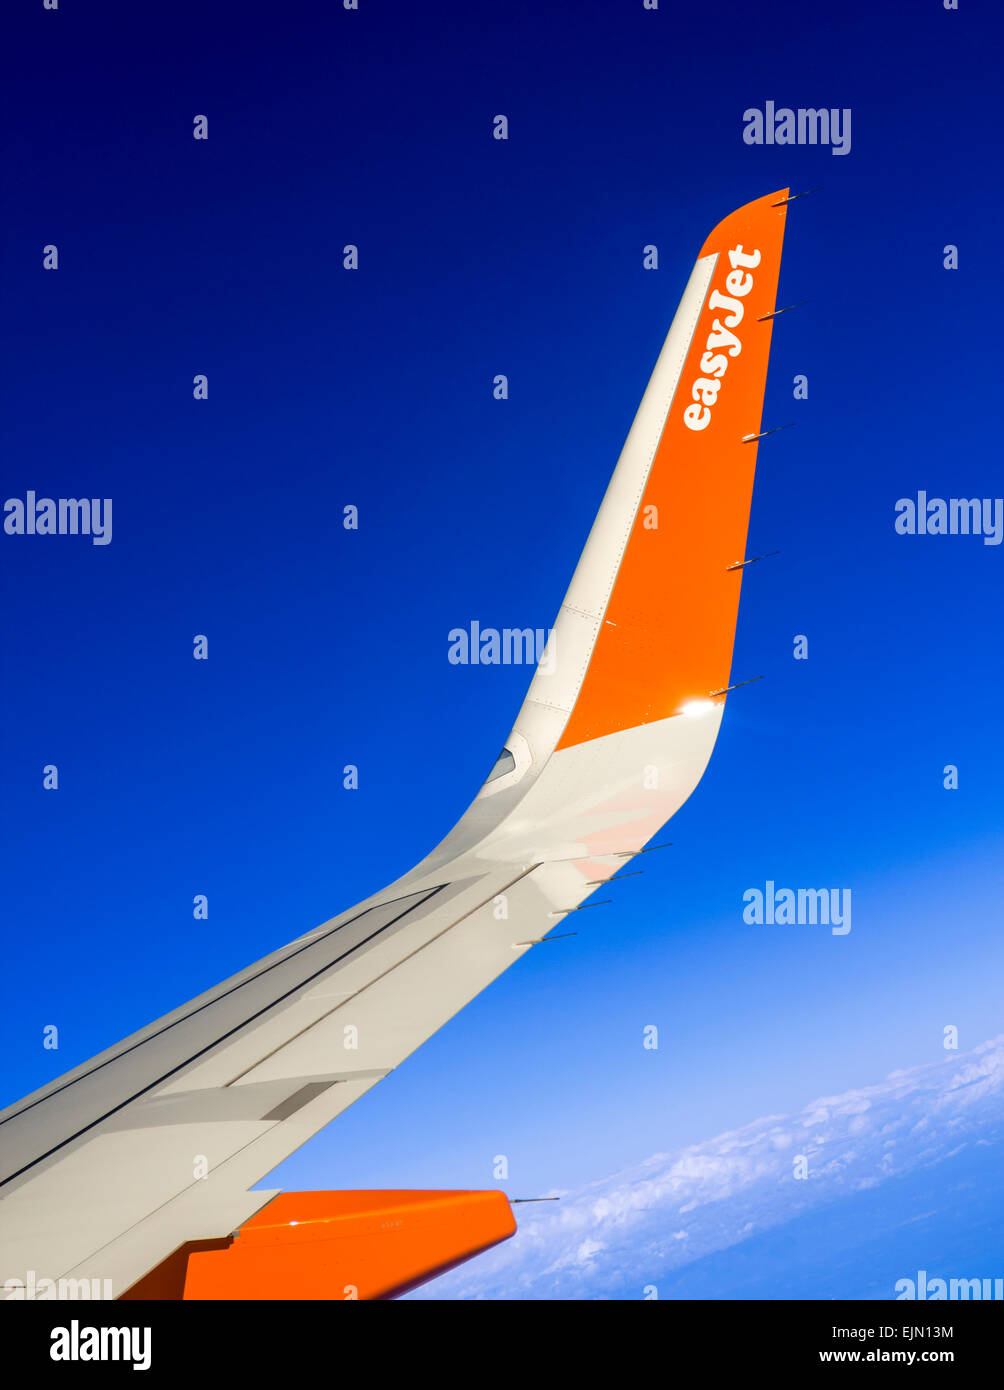 Wing of an Easyjet airplane in flight. - Stock Image